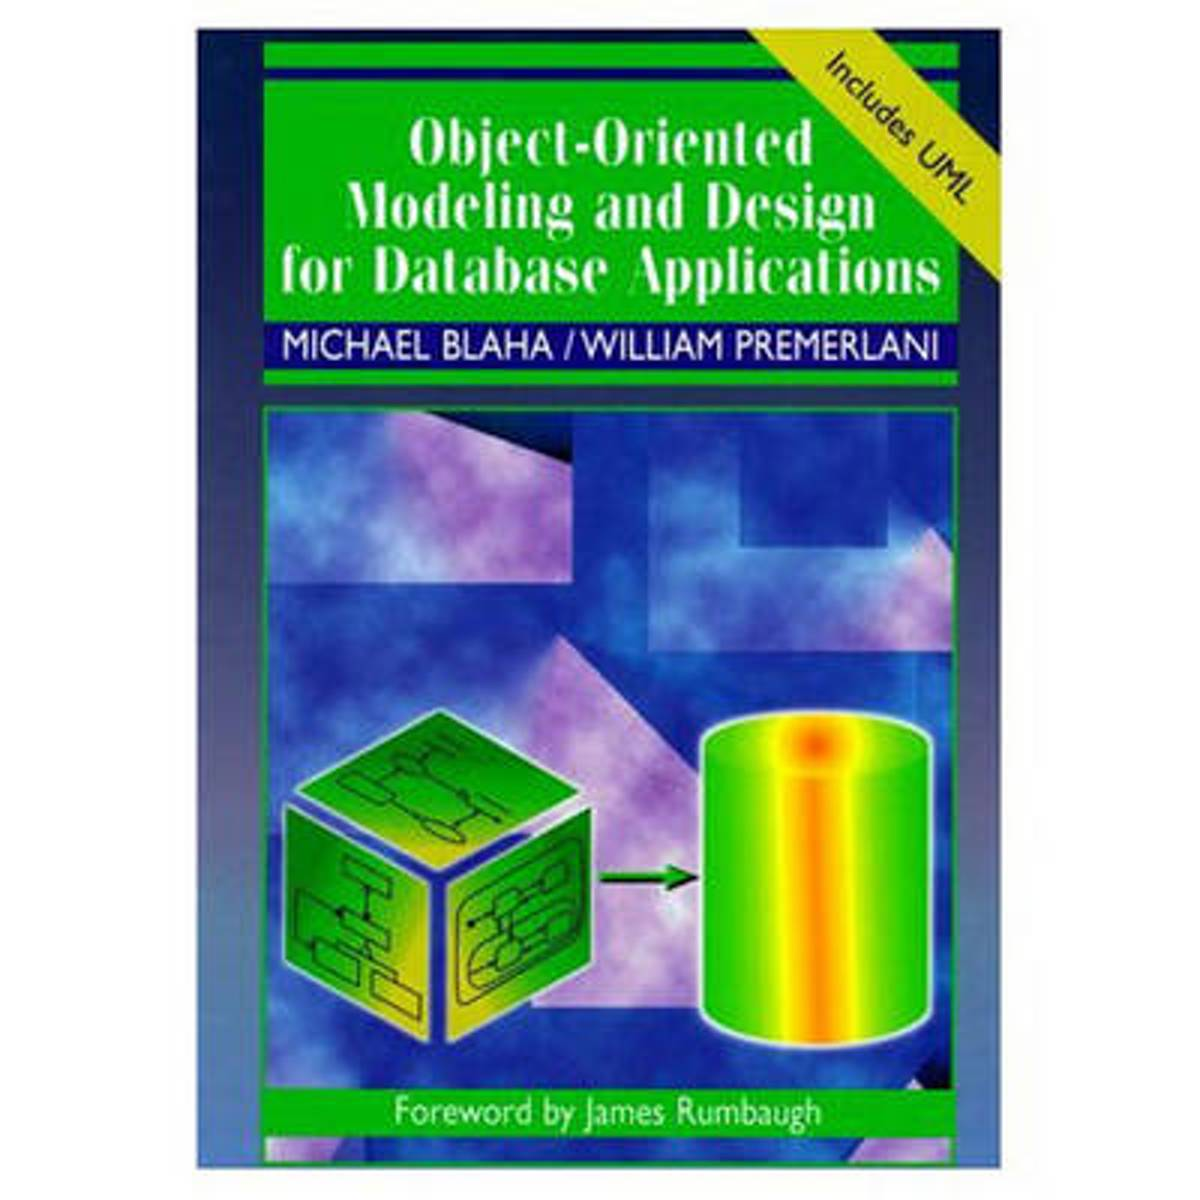 Object-Oriented Modeling and Design for Database Applications